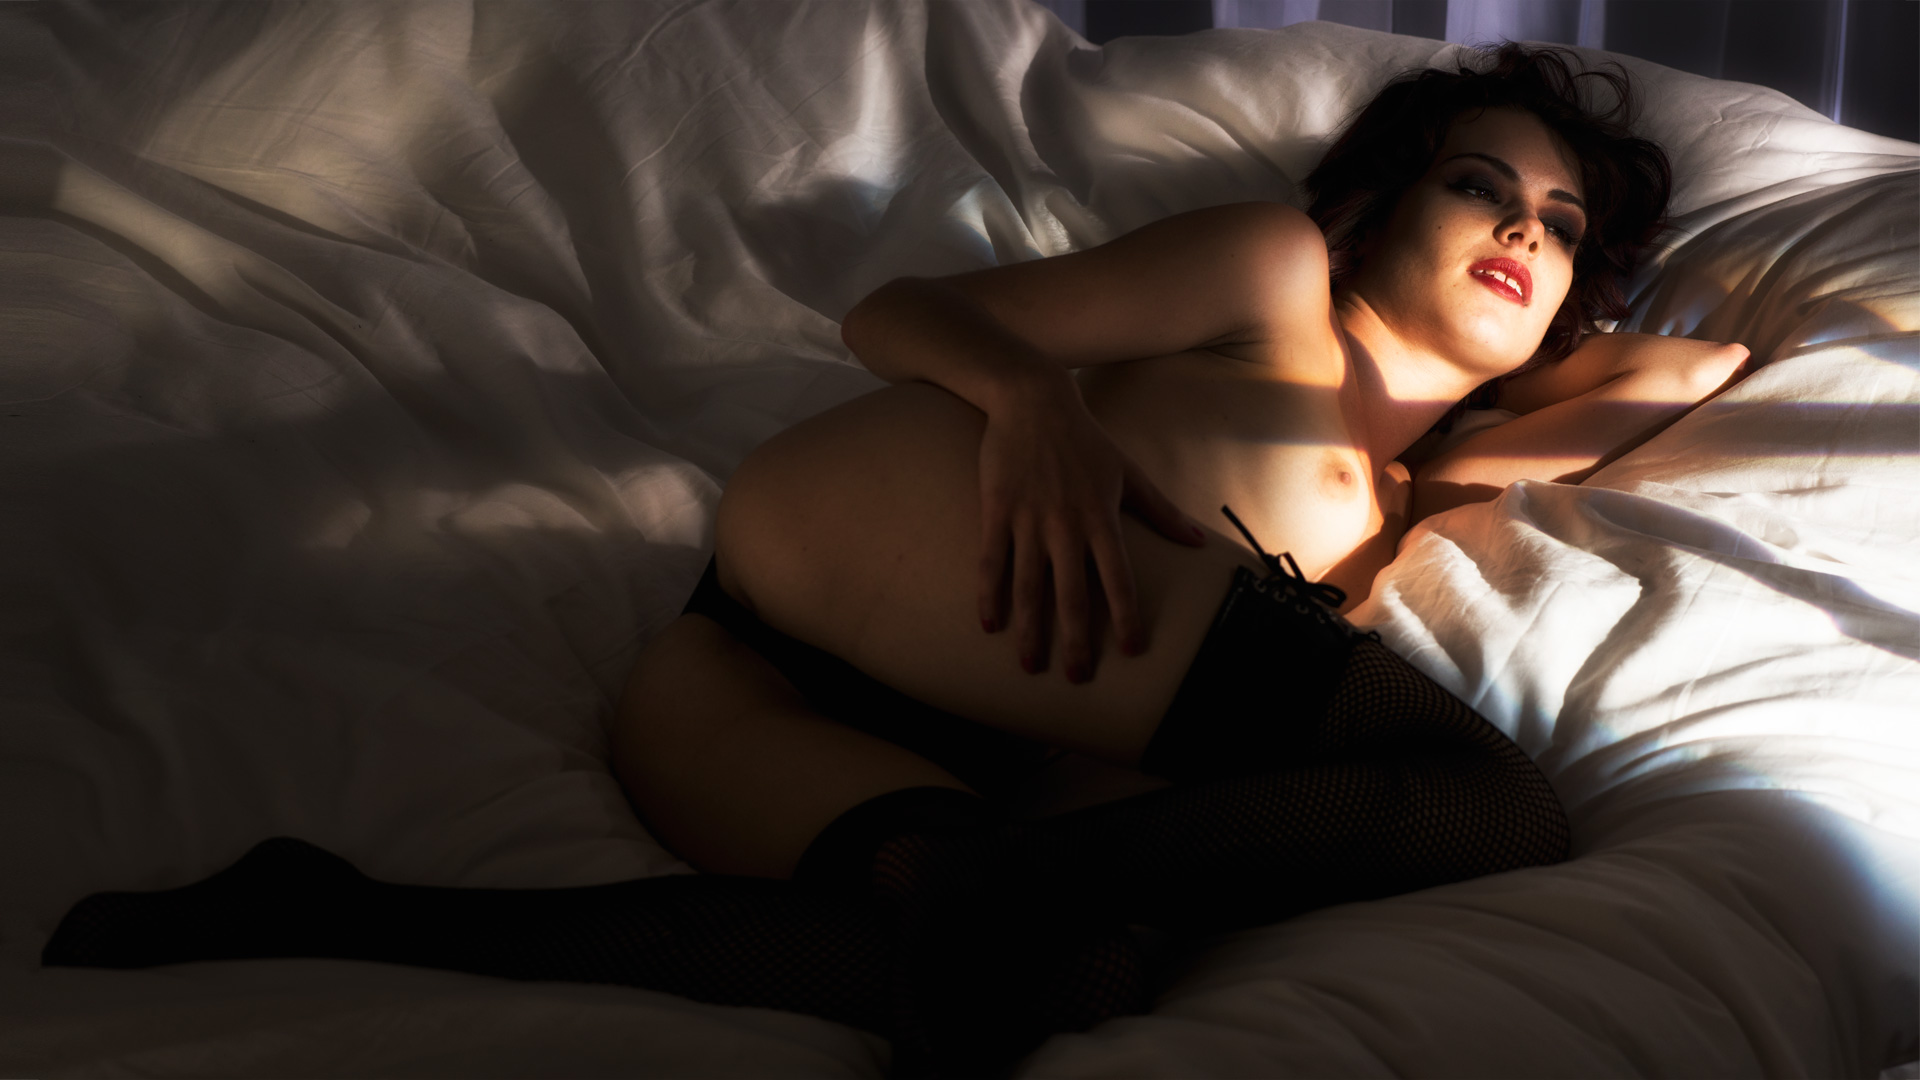 Boudoir Photography Vancouver, BC - Mary June